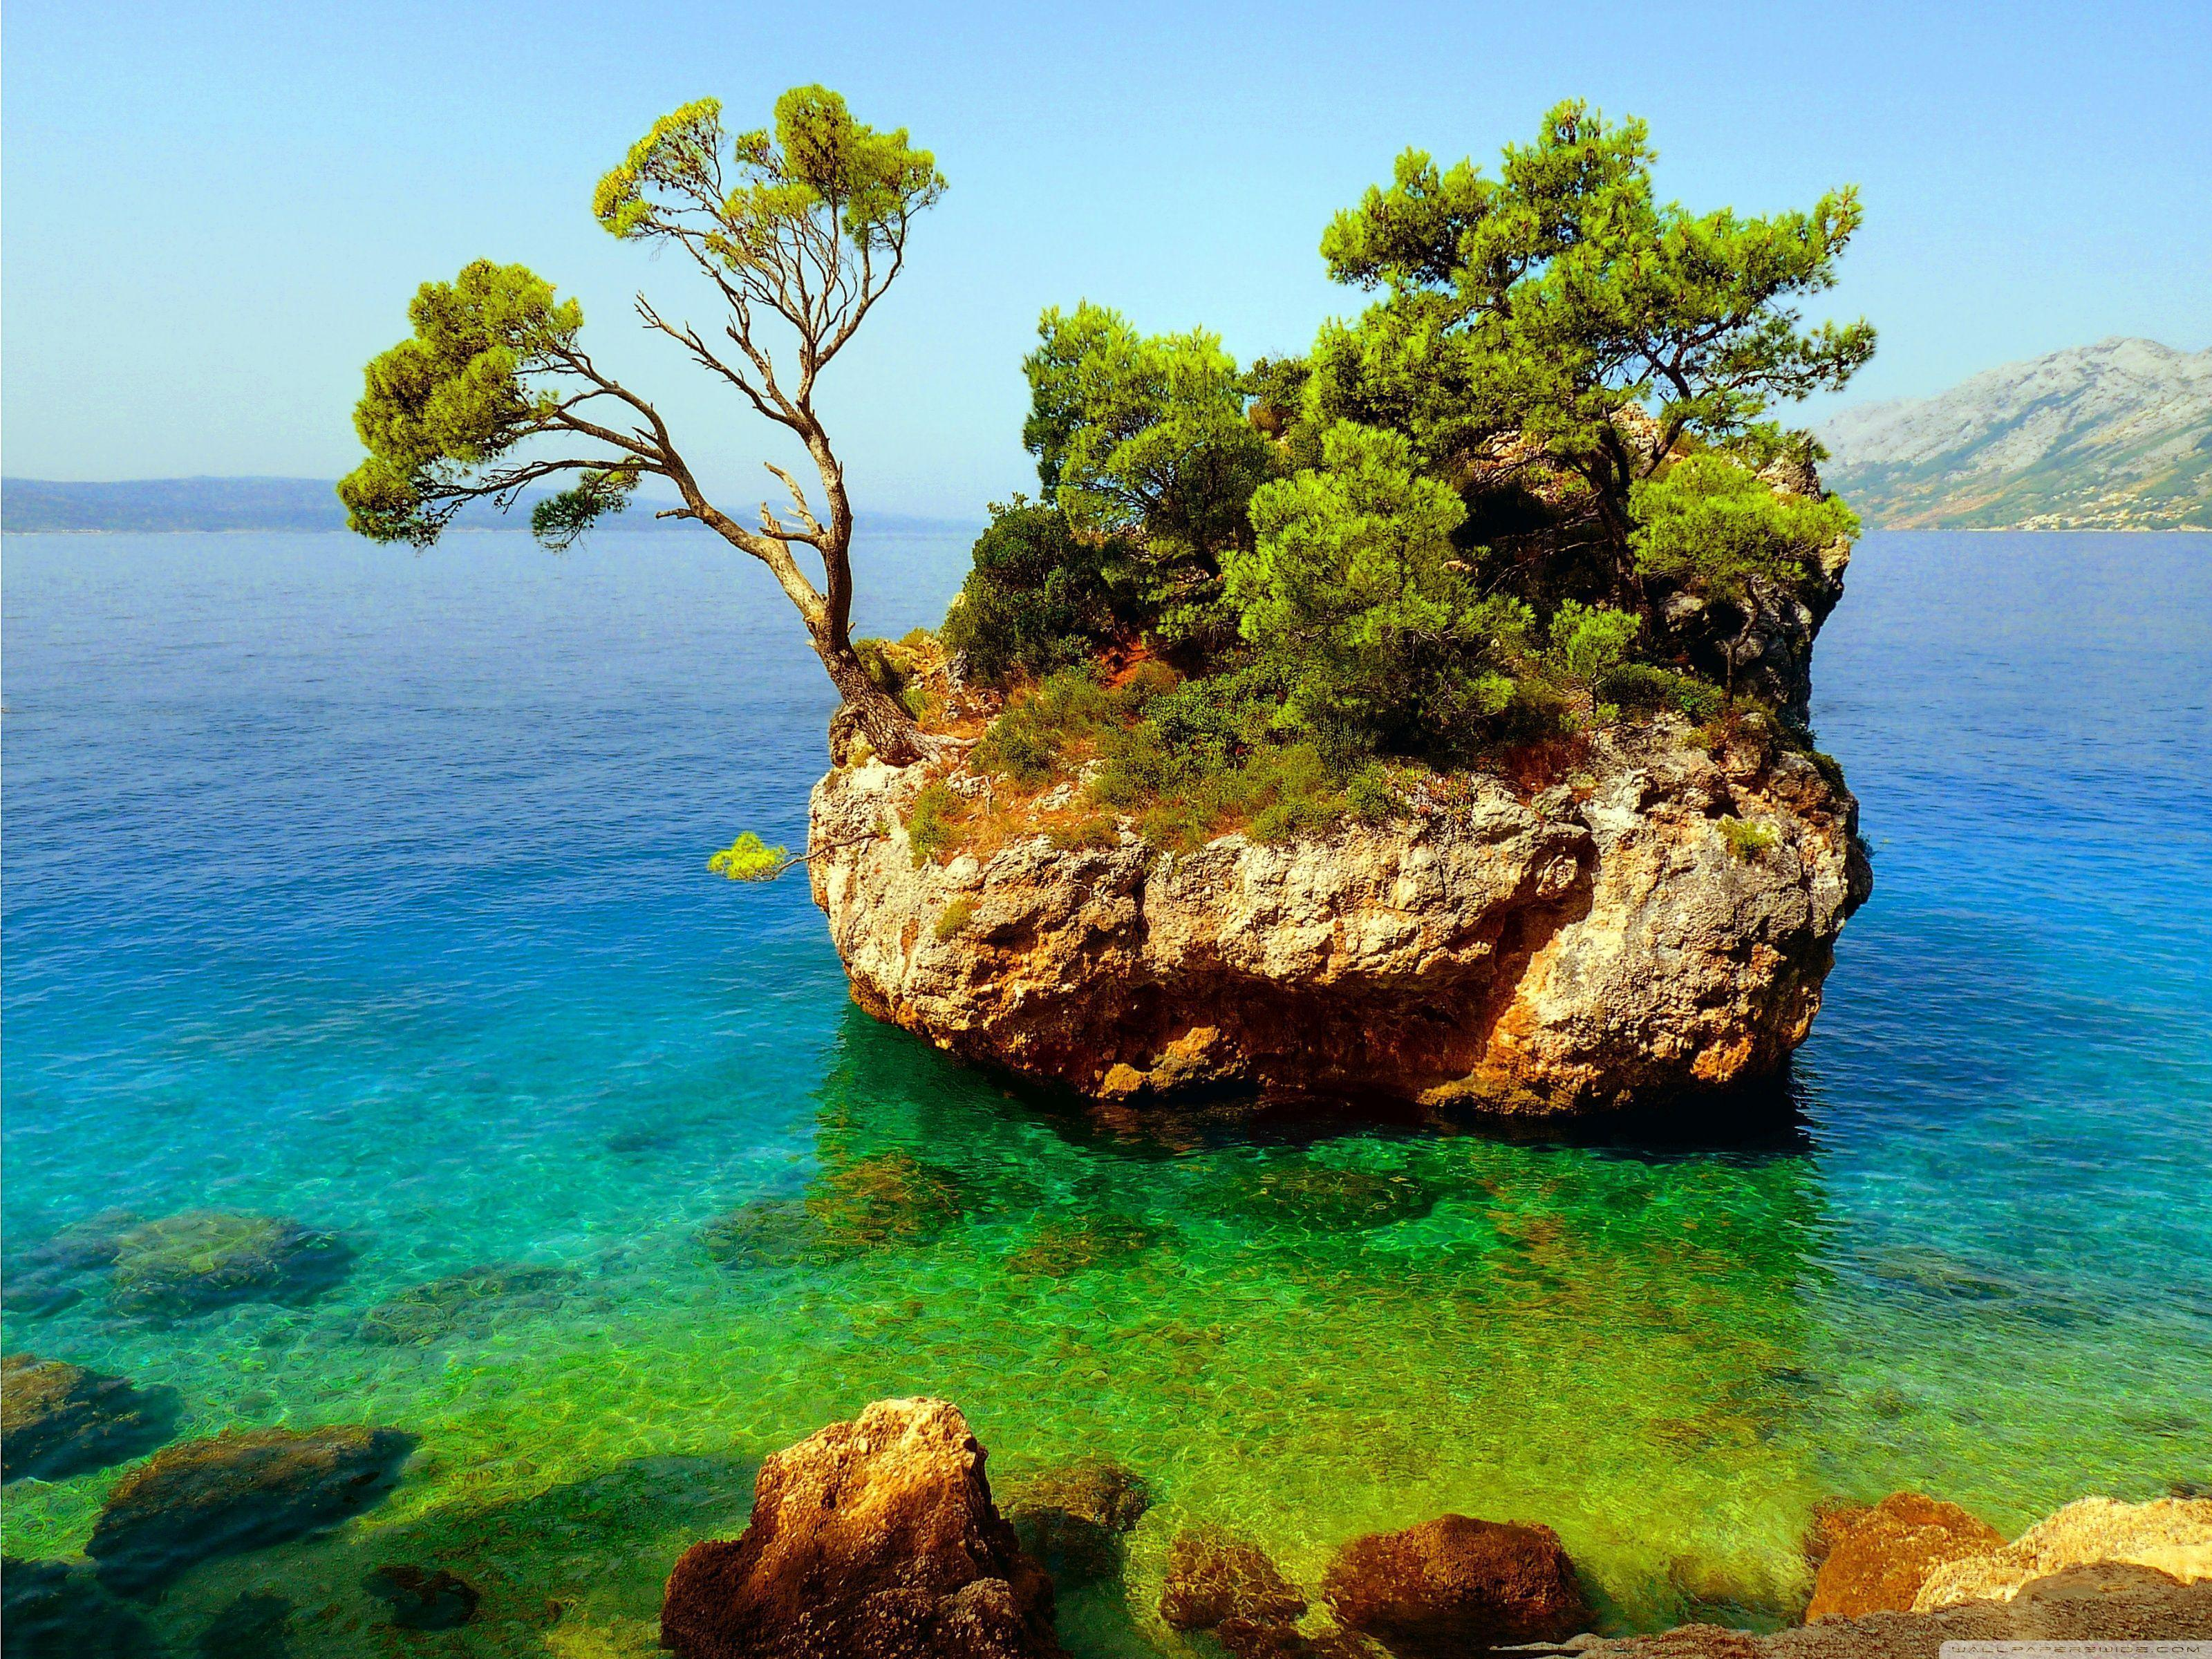 Croatia Wallpapers - Wallpaper Cave Wallpaperswide